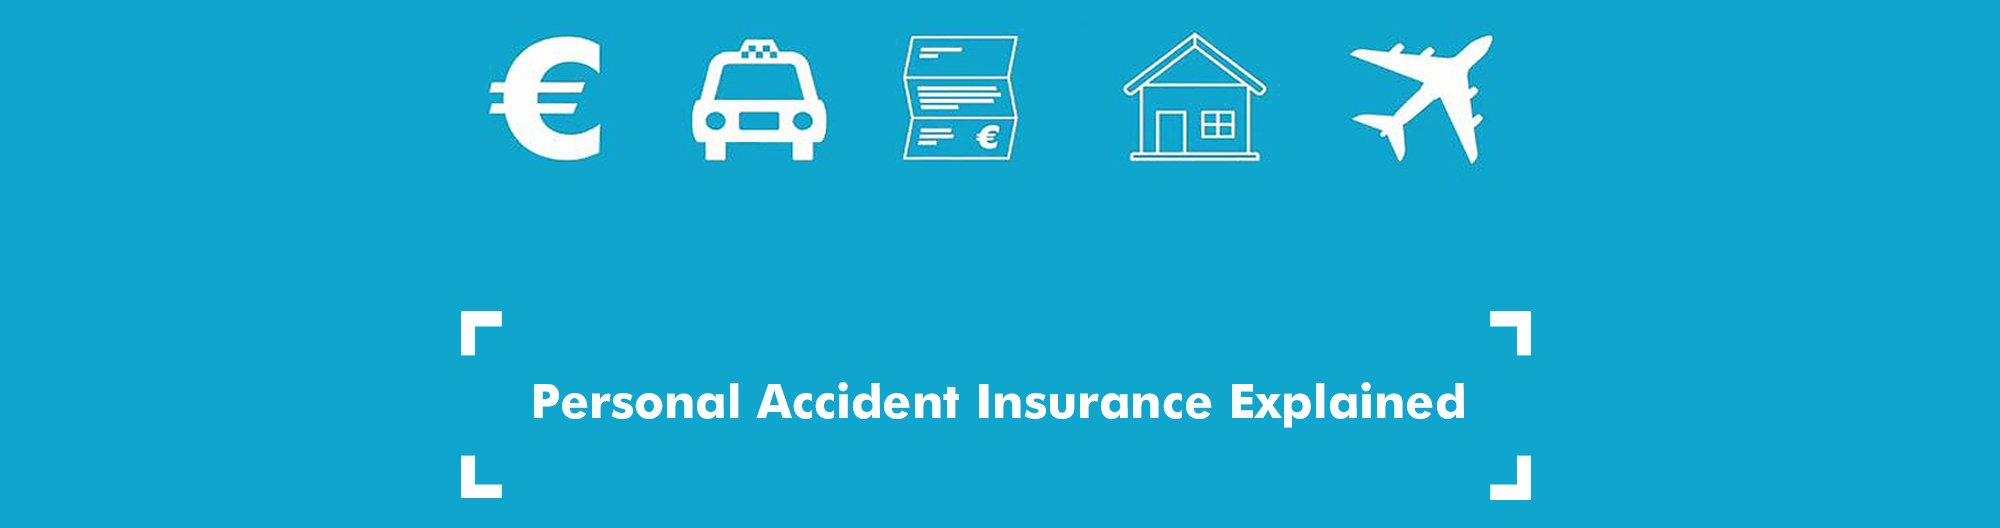 What is AIG Personal Accident Insurance?